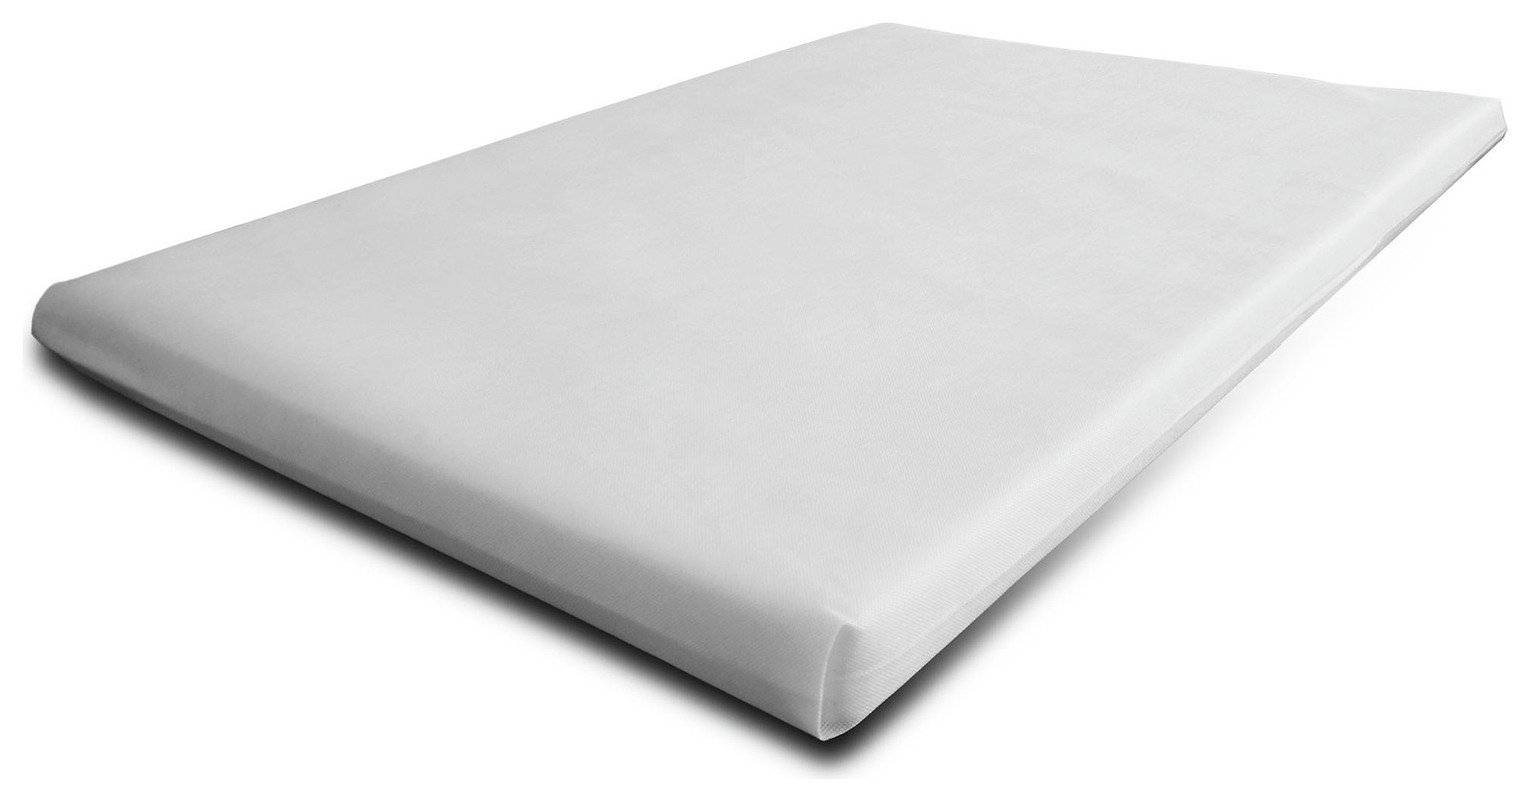 Cuggl Foam Cot Mattress - 120 x 60cm